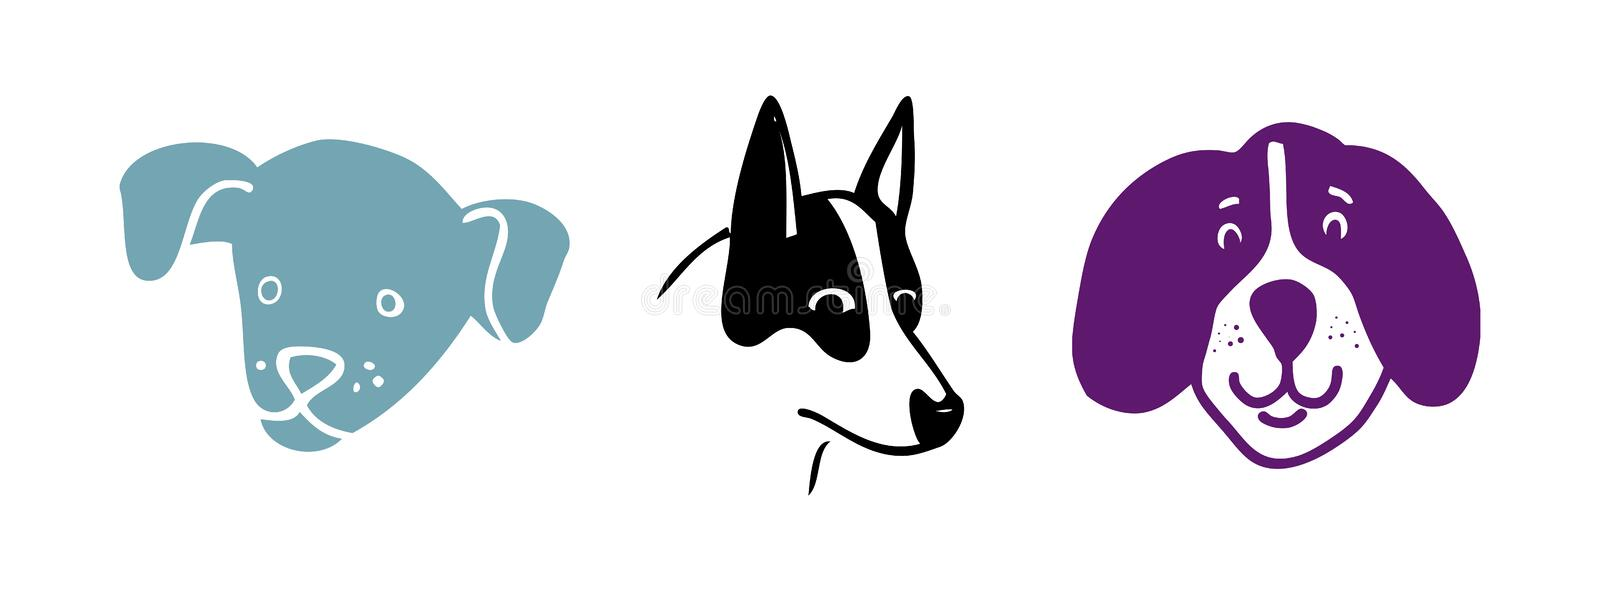 Cute hand drawn dog drawings vector set, puppy or doggies head or face royalty free illustration